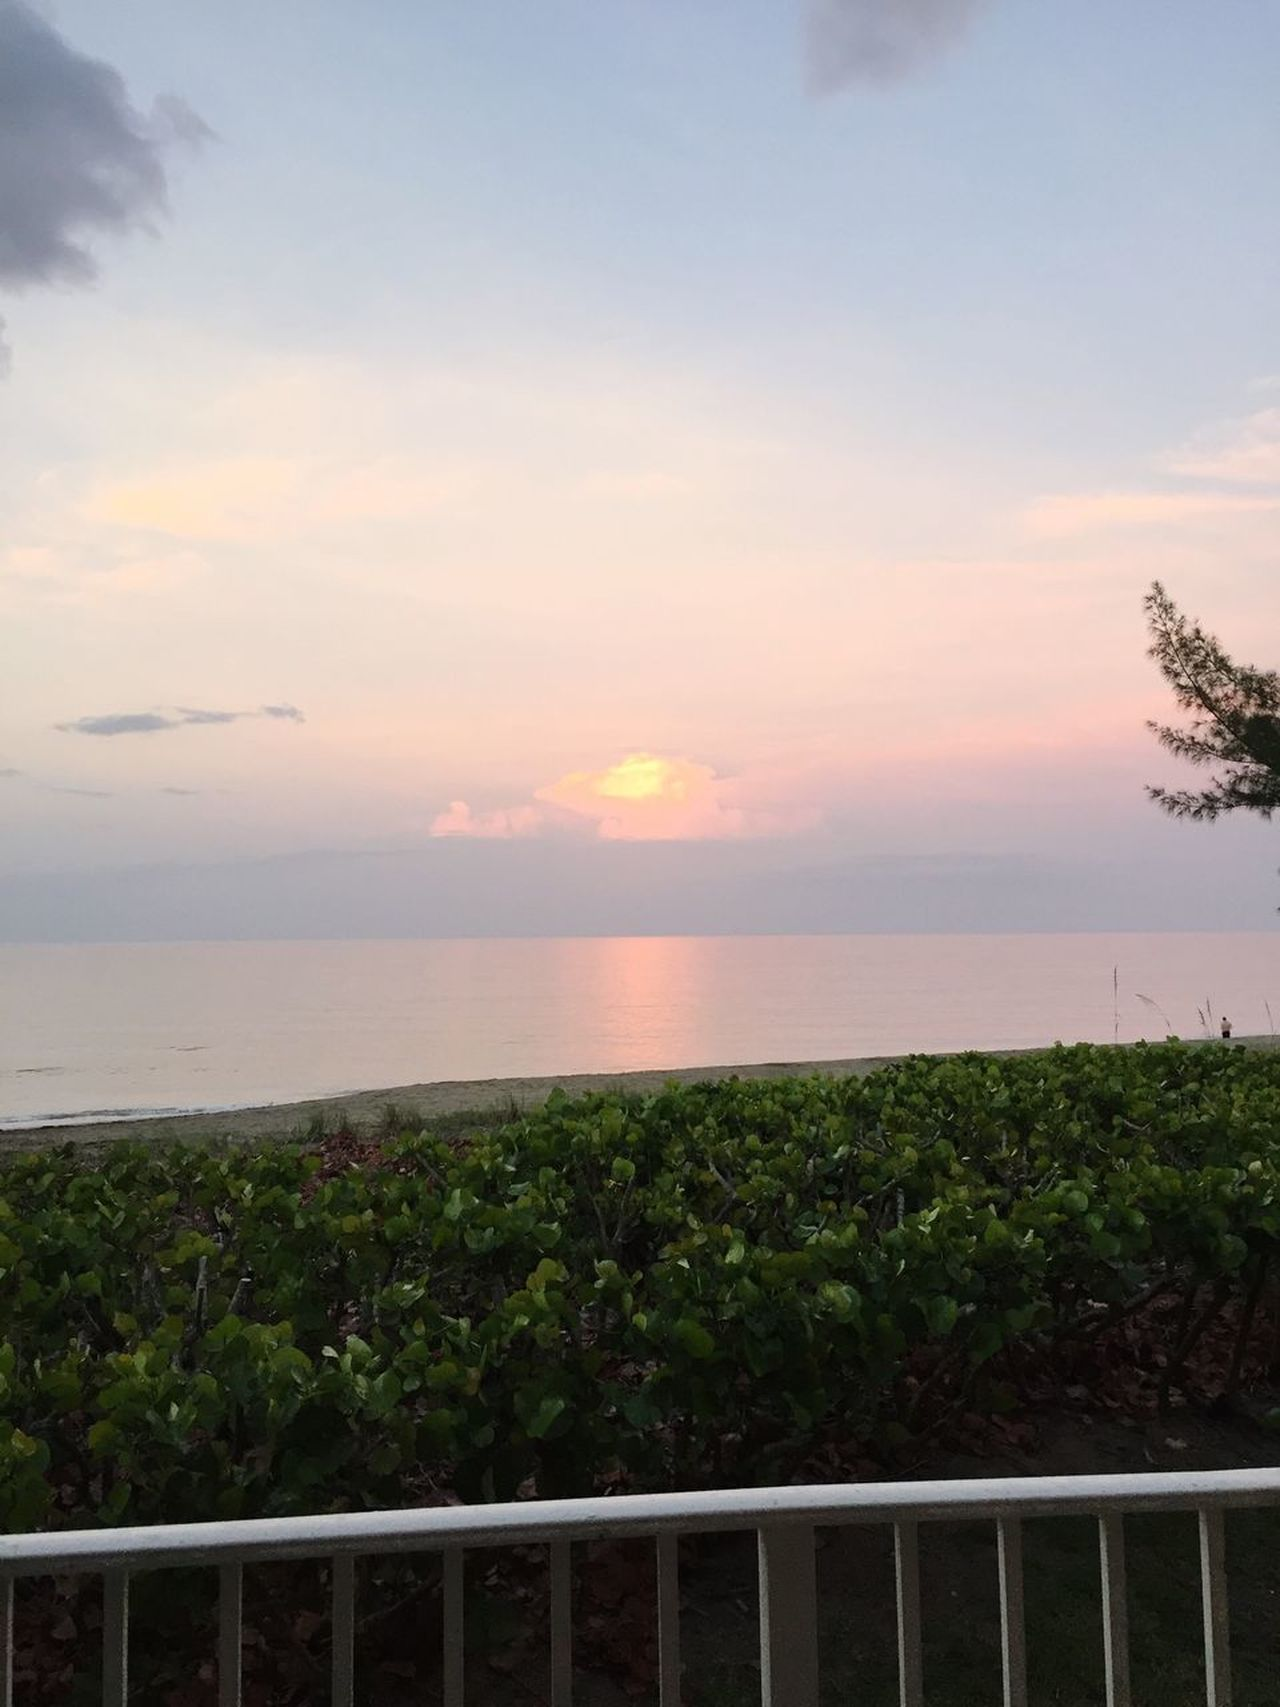 Nature Sky Scenics Tranquility Sunset Beauty In Nature Sea Tranquil Scene Growth Railing No People Horizon Over Water Plant Outdoors Landscape Cloud - Sky Tree Water Day sunset sky water ocean